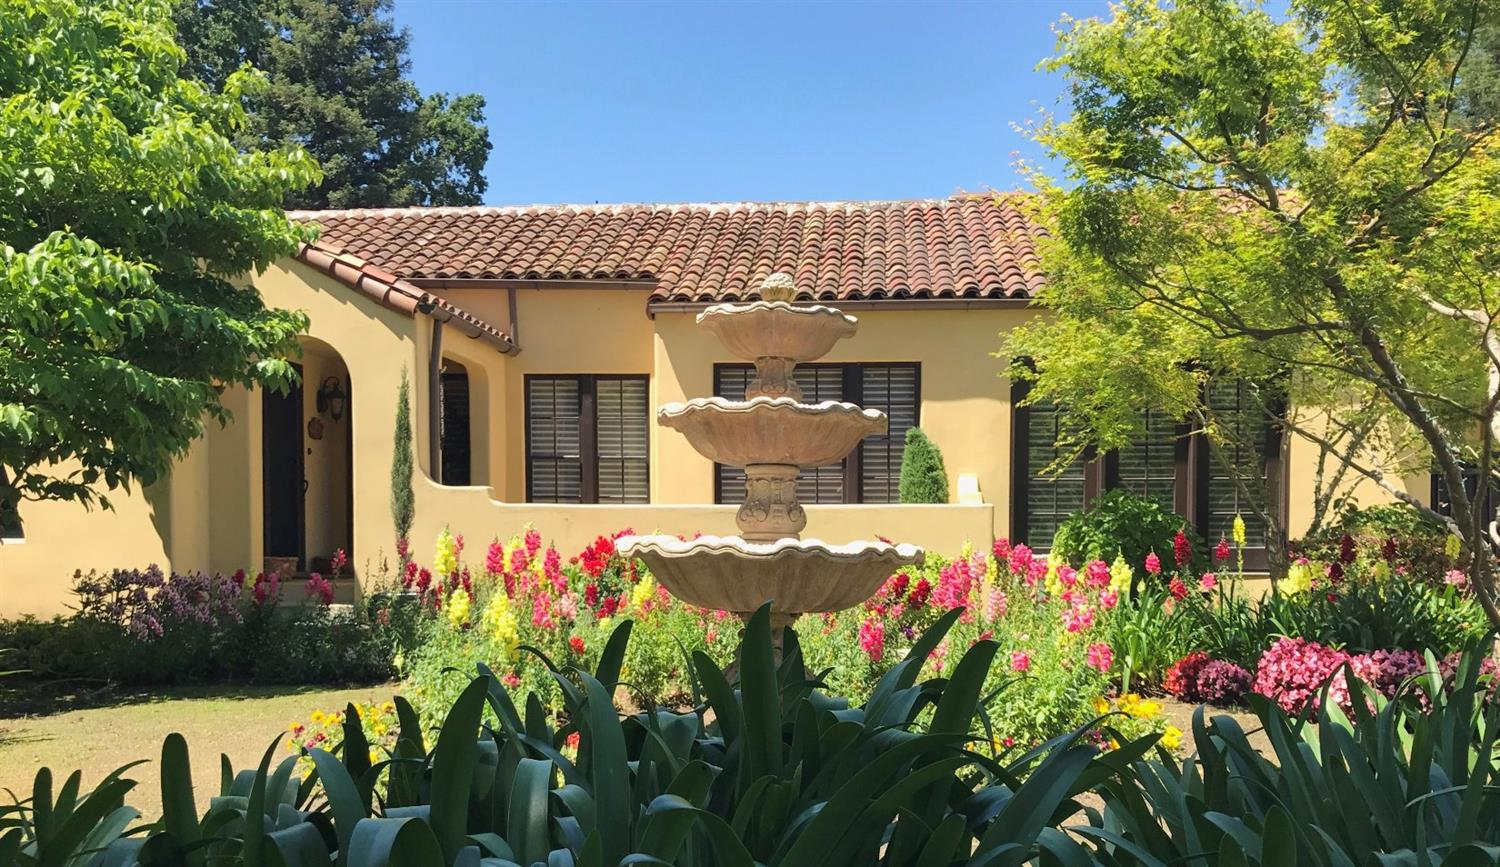 This is a spectacular rare Spanish style custom 2-story home in Old Green Acres. 4BD, 3 1/2BA, salt water pool & spa, w/cabana area.  LR with barrel ceiling, hardwood flrs, lrg. arched window & frplc. Great rm w/Venetian frplc. & double French drs open to patio areas. Library/Study has walls of built-in cabinets.  The gourmet kitchen includes marble countertops, Farmhouse sink,cherry wood center island w/limestone double countertops & prep sink.  Built-in Subzero refrigerator, Bosch dishwasher, garbage bins, all matching cabinety. Also, a freestanding beverage bar matches cabinetry w/built-in beer keg & fridge. Pantry. Bright breakfast rm/lounge area has multi-pane windows & built-in glass front cabinets.  Laundry rm w/sink & full wall of cherry cabinets.  Detached 2-car garage w/studio & 1/2 bath, 2-carport areas, covered driveway (porte-cochere) all behind rolling iron gate. RV parking.  Broker related to Seller.